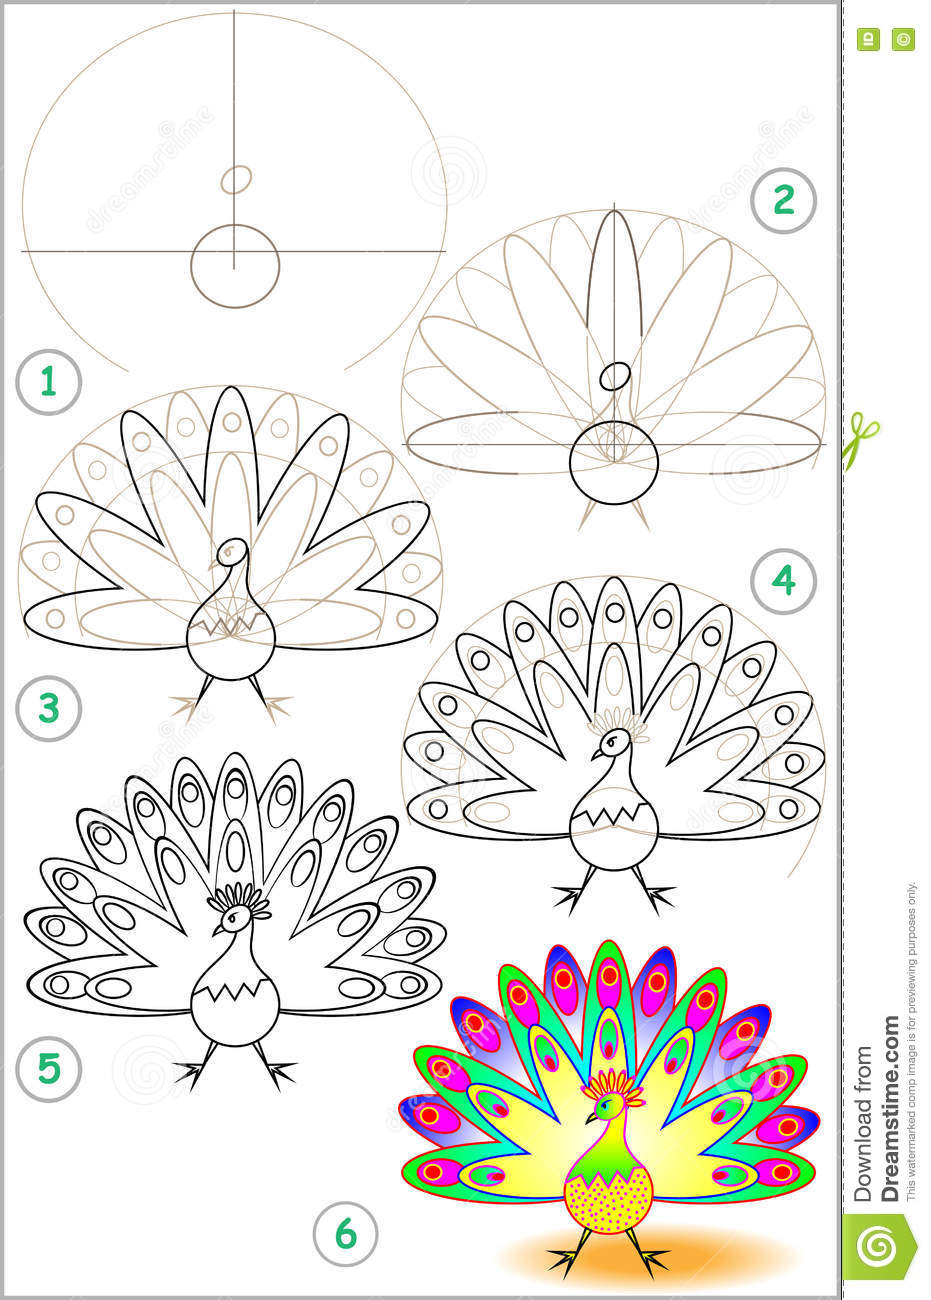 page shows how to learn step by step to draw a peacock